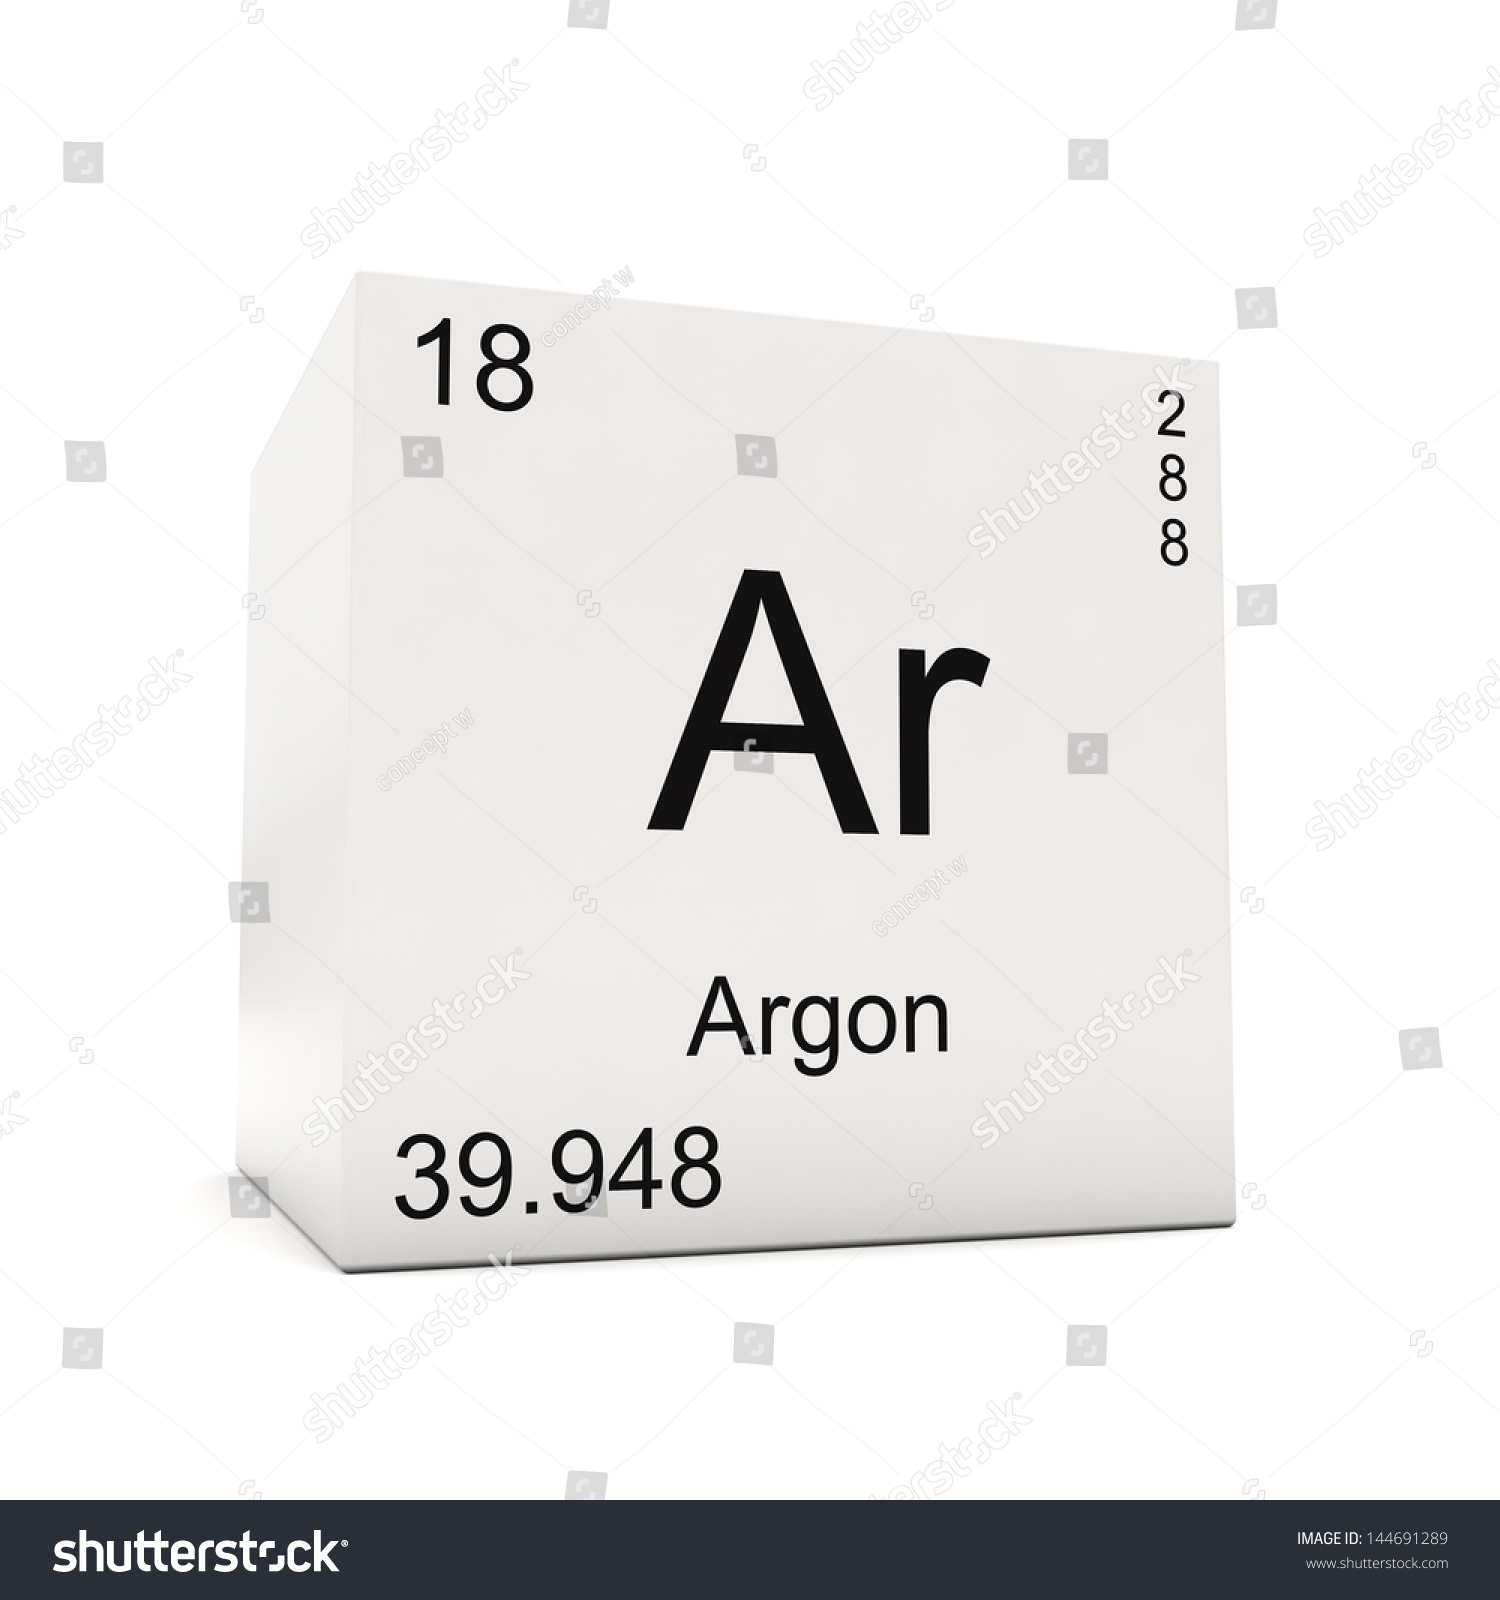 Cube argon element periodic table isolated stock illustration cube of argon element of the periodic table isolated on white background gamestrikefo Choice Image